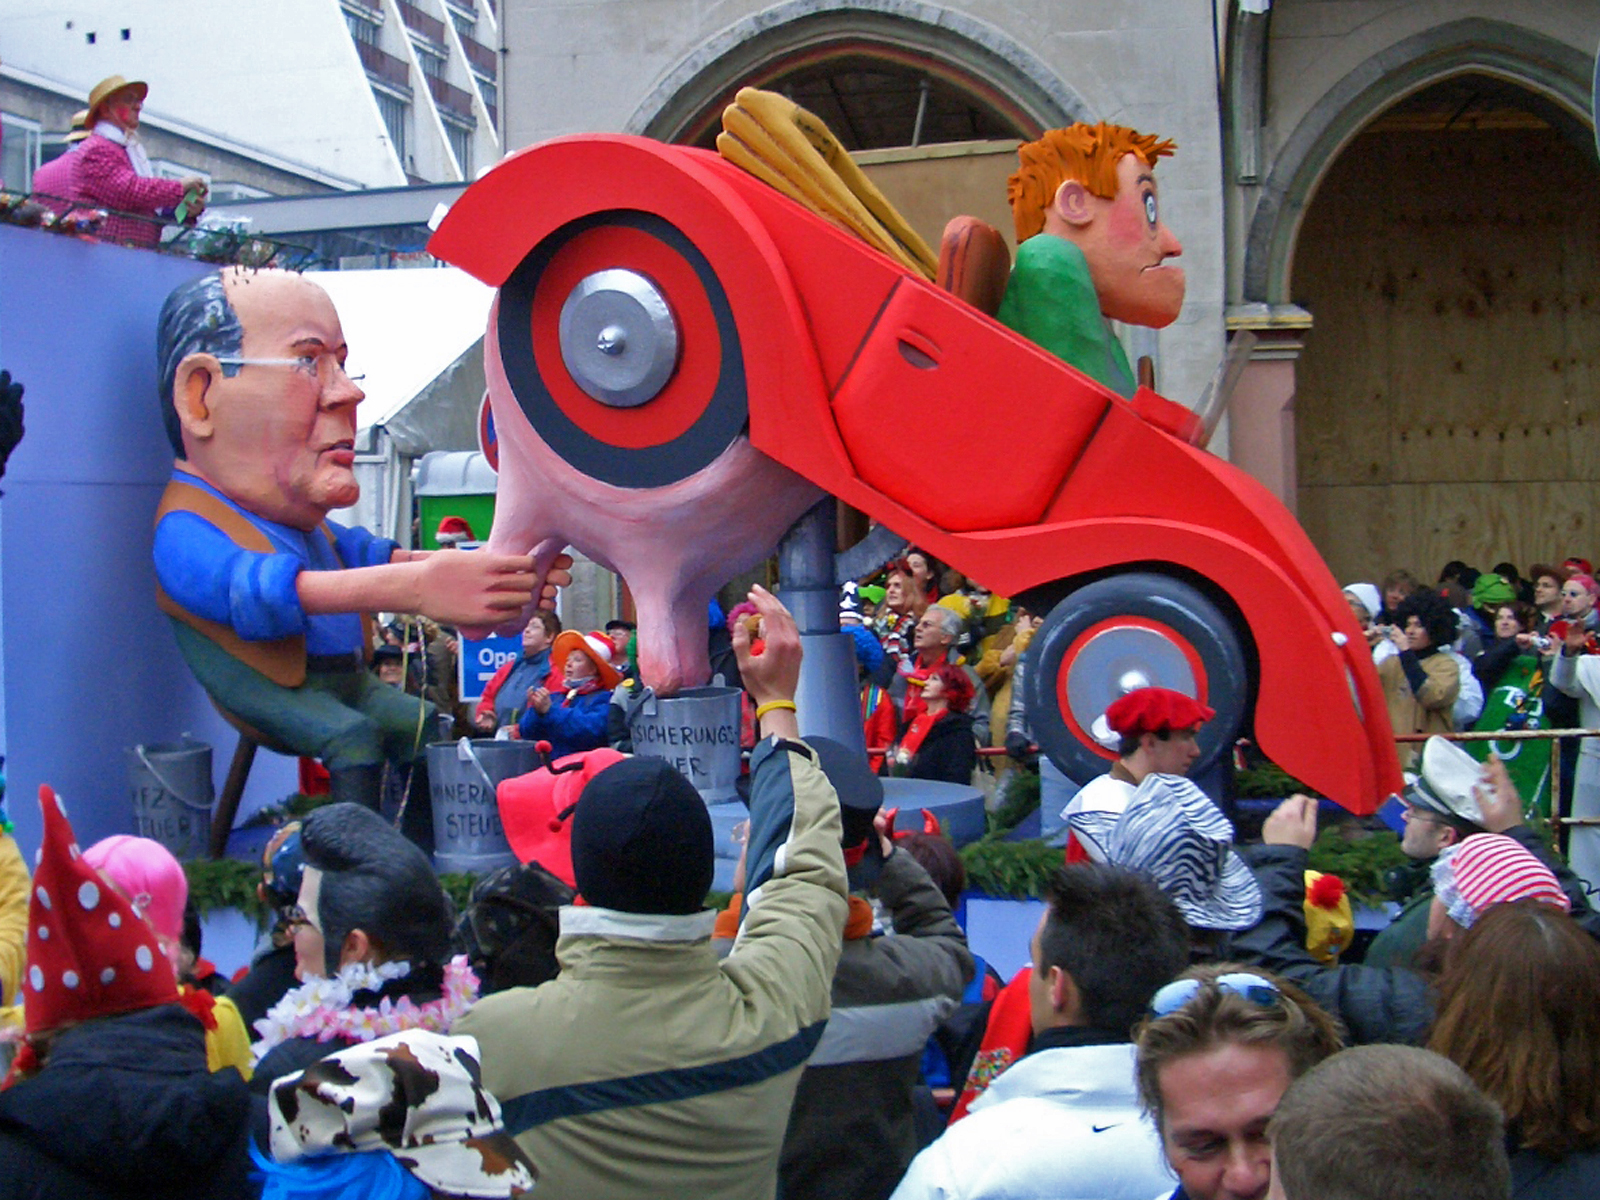 Autokuh - Car Cow in Cologne